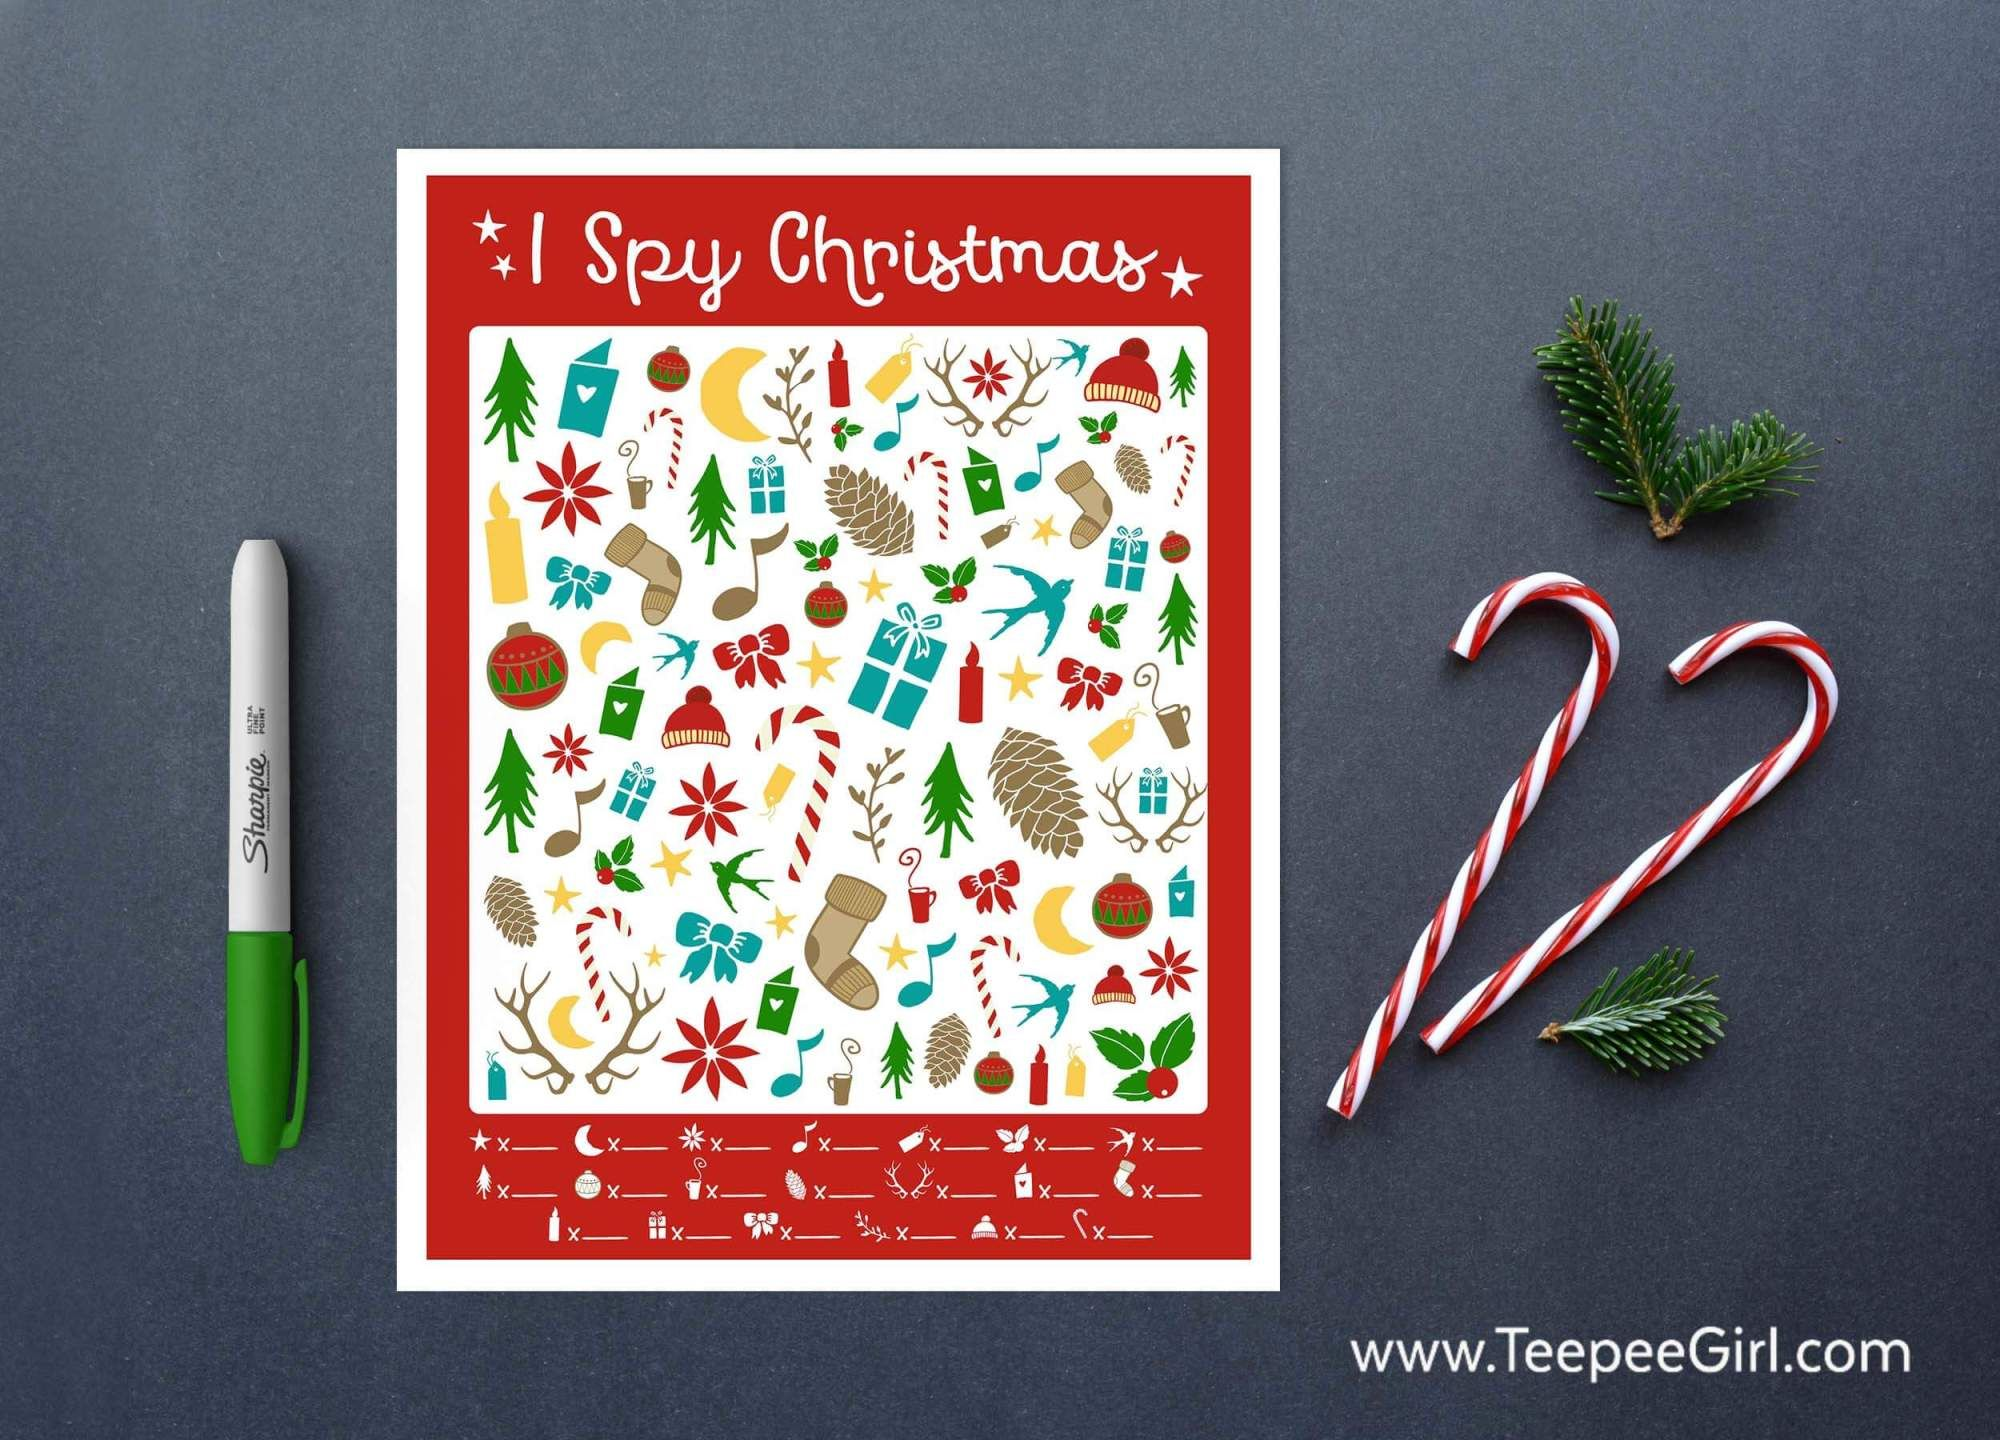 FREE I Spy Christmas Printable Game!